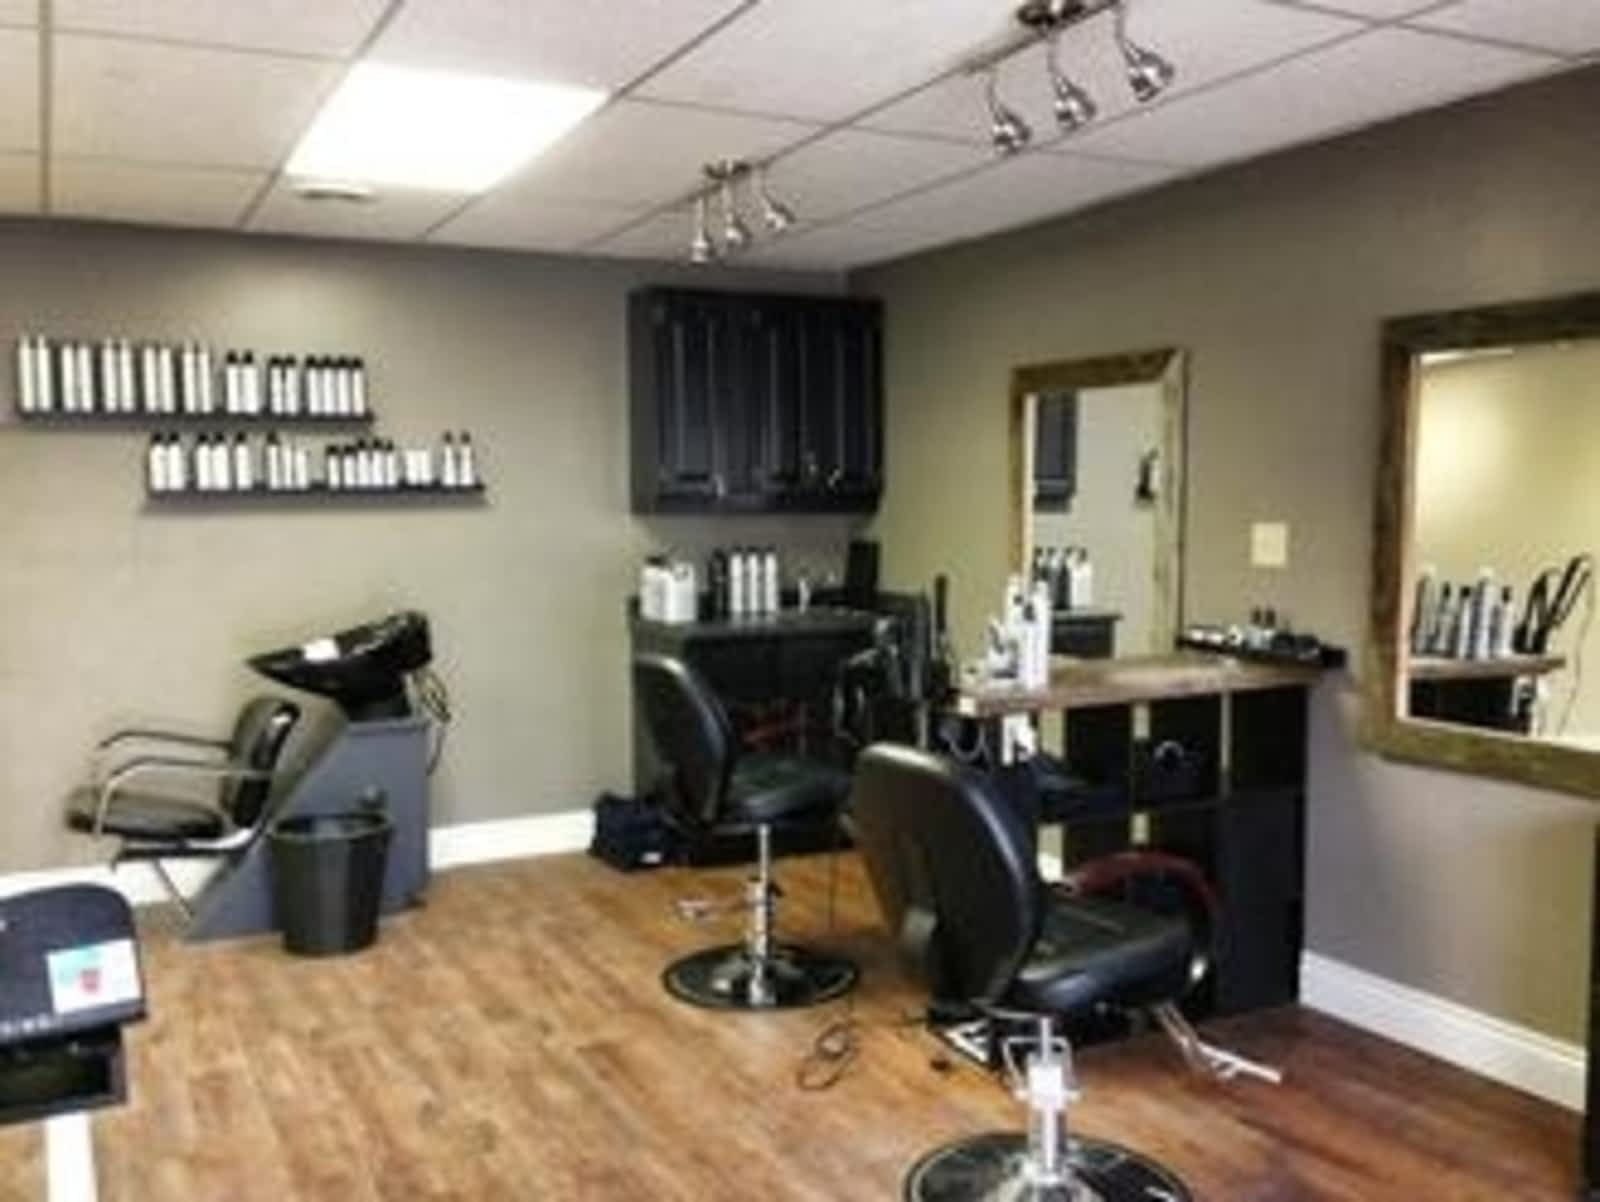 Salon Chic Tres Chic Esthetics And Salon Opening Hours 747 2nd Ave E